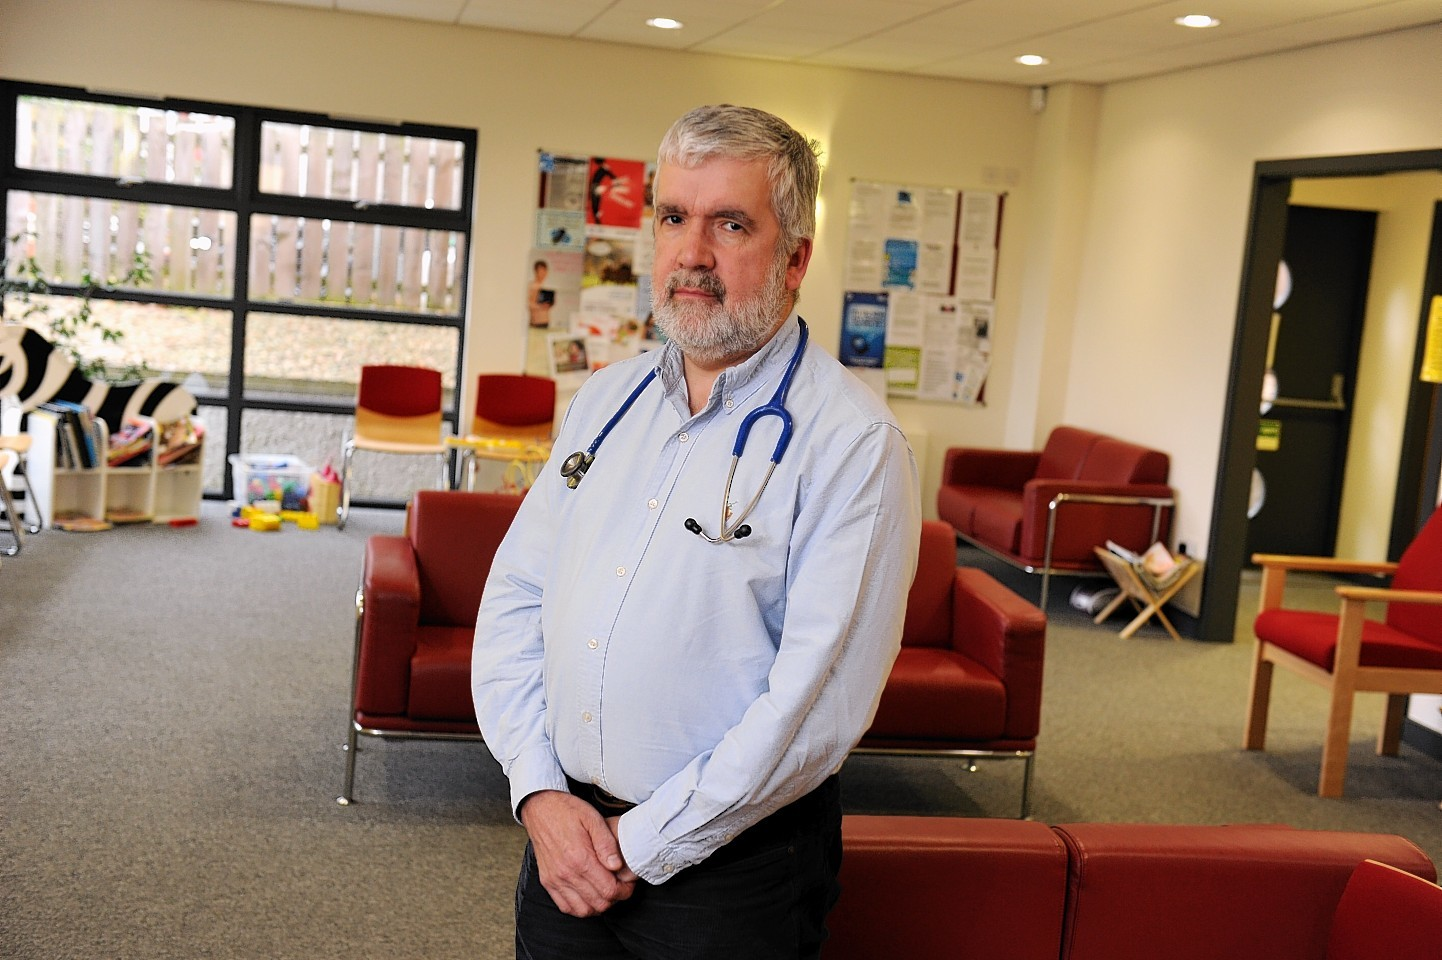 Dr Ken Lawton has warned there is a deepening crisis in the Scottish health service. Picture by Kenny Elrick